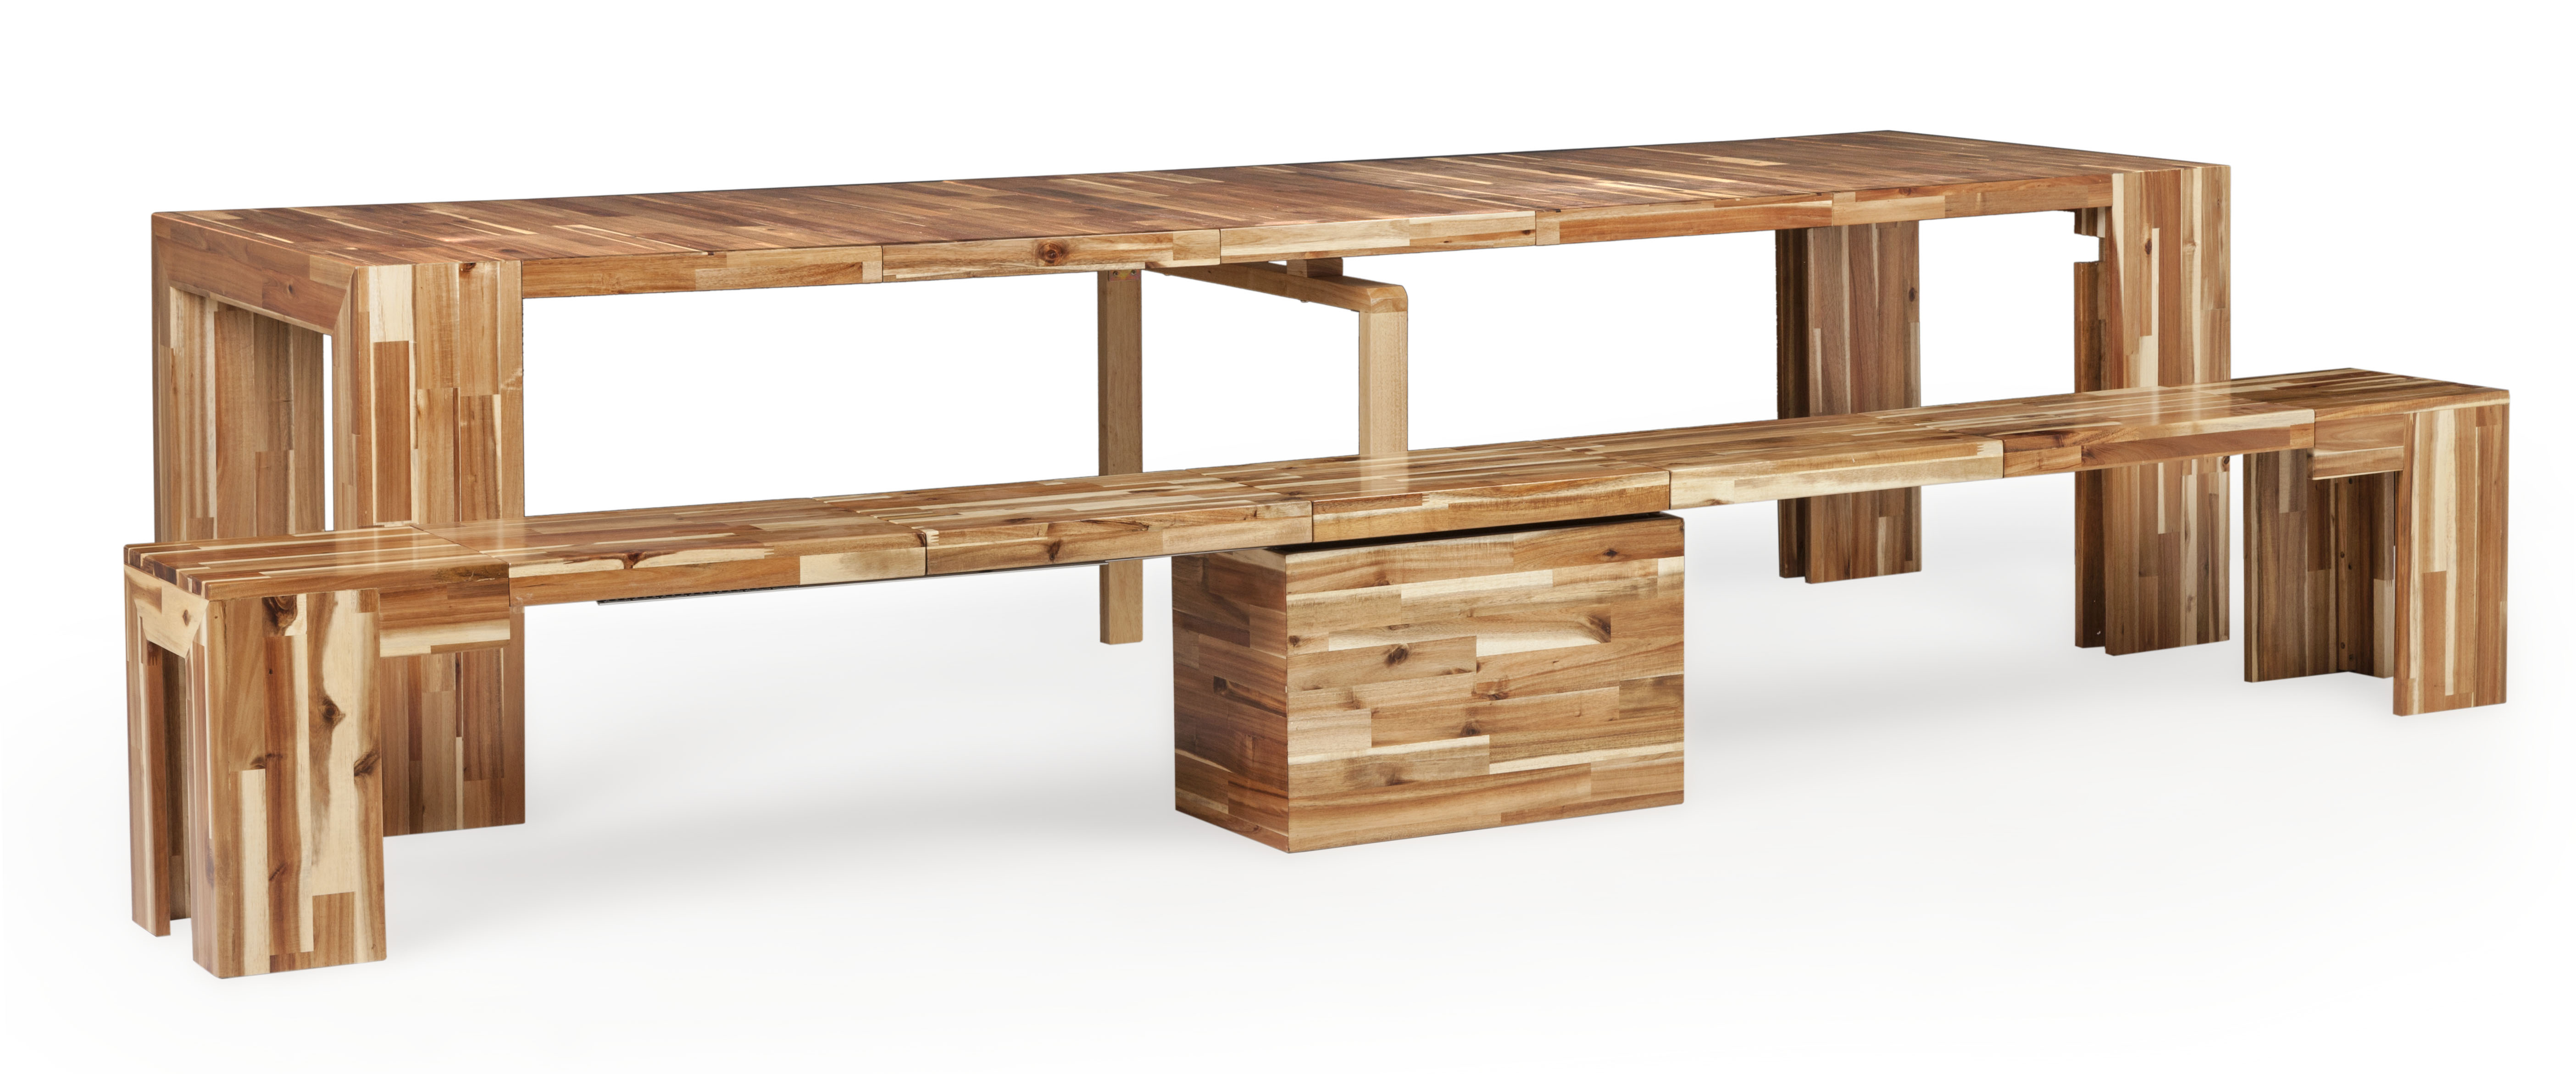 Transformer Table 20 6 Tables In 1 Design